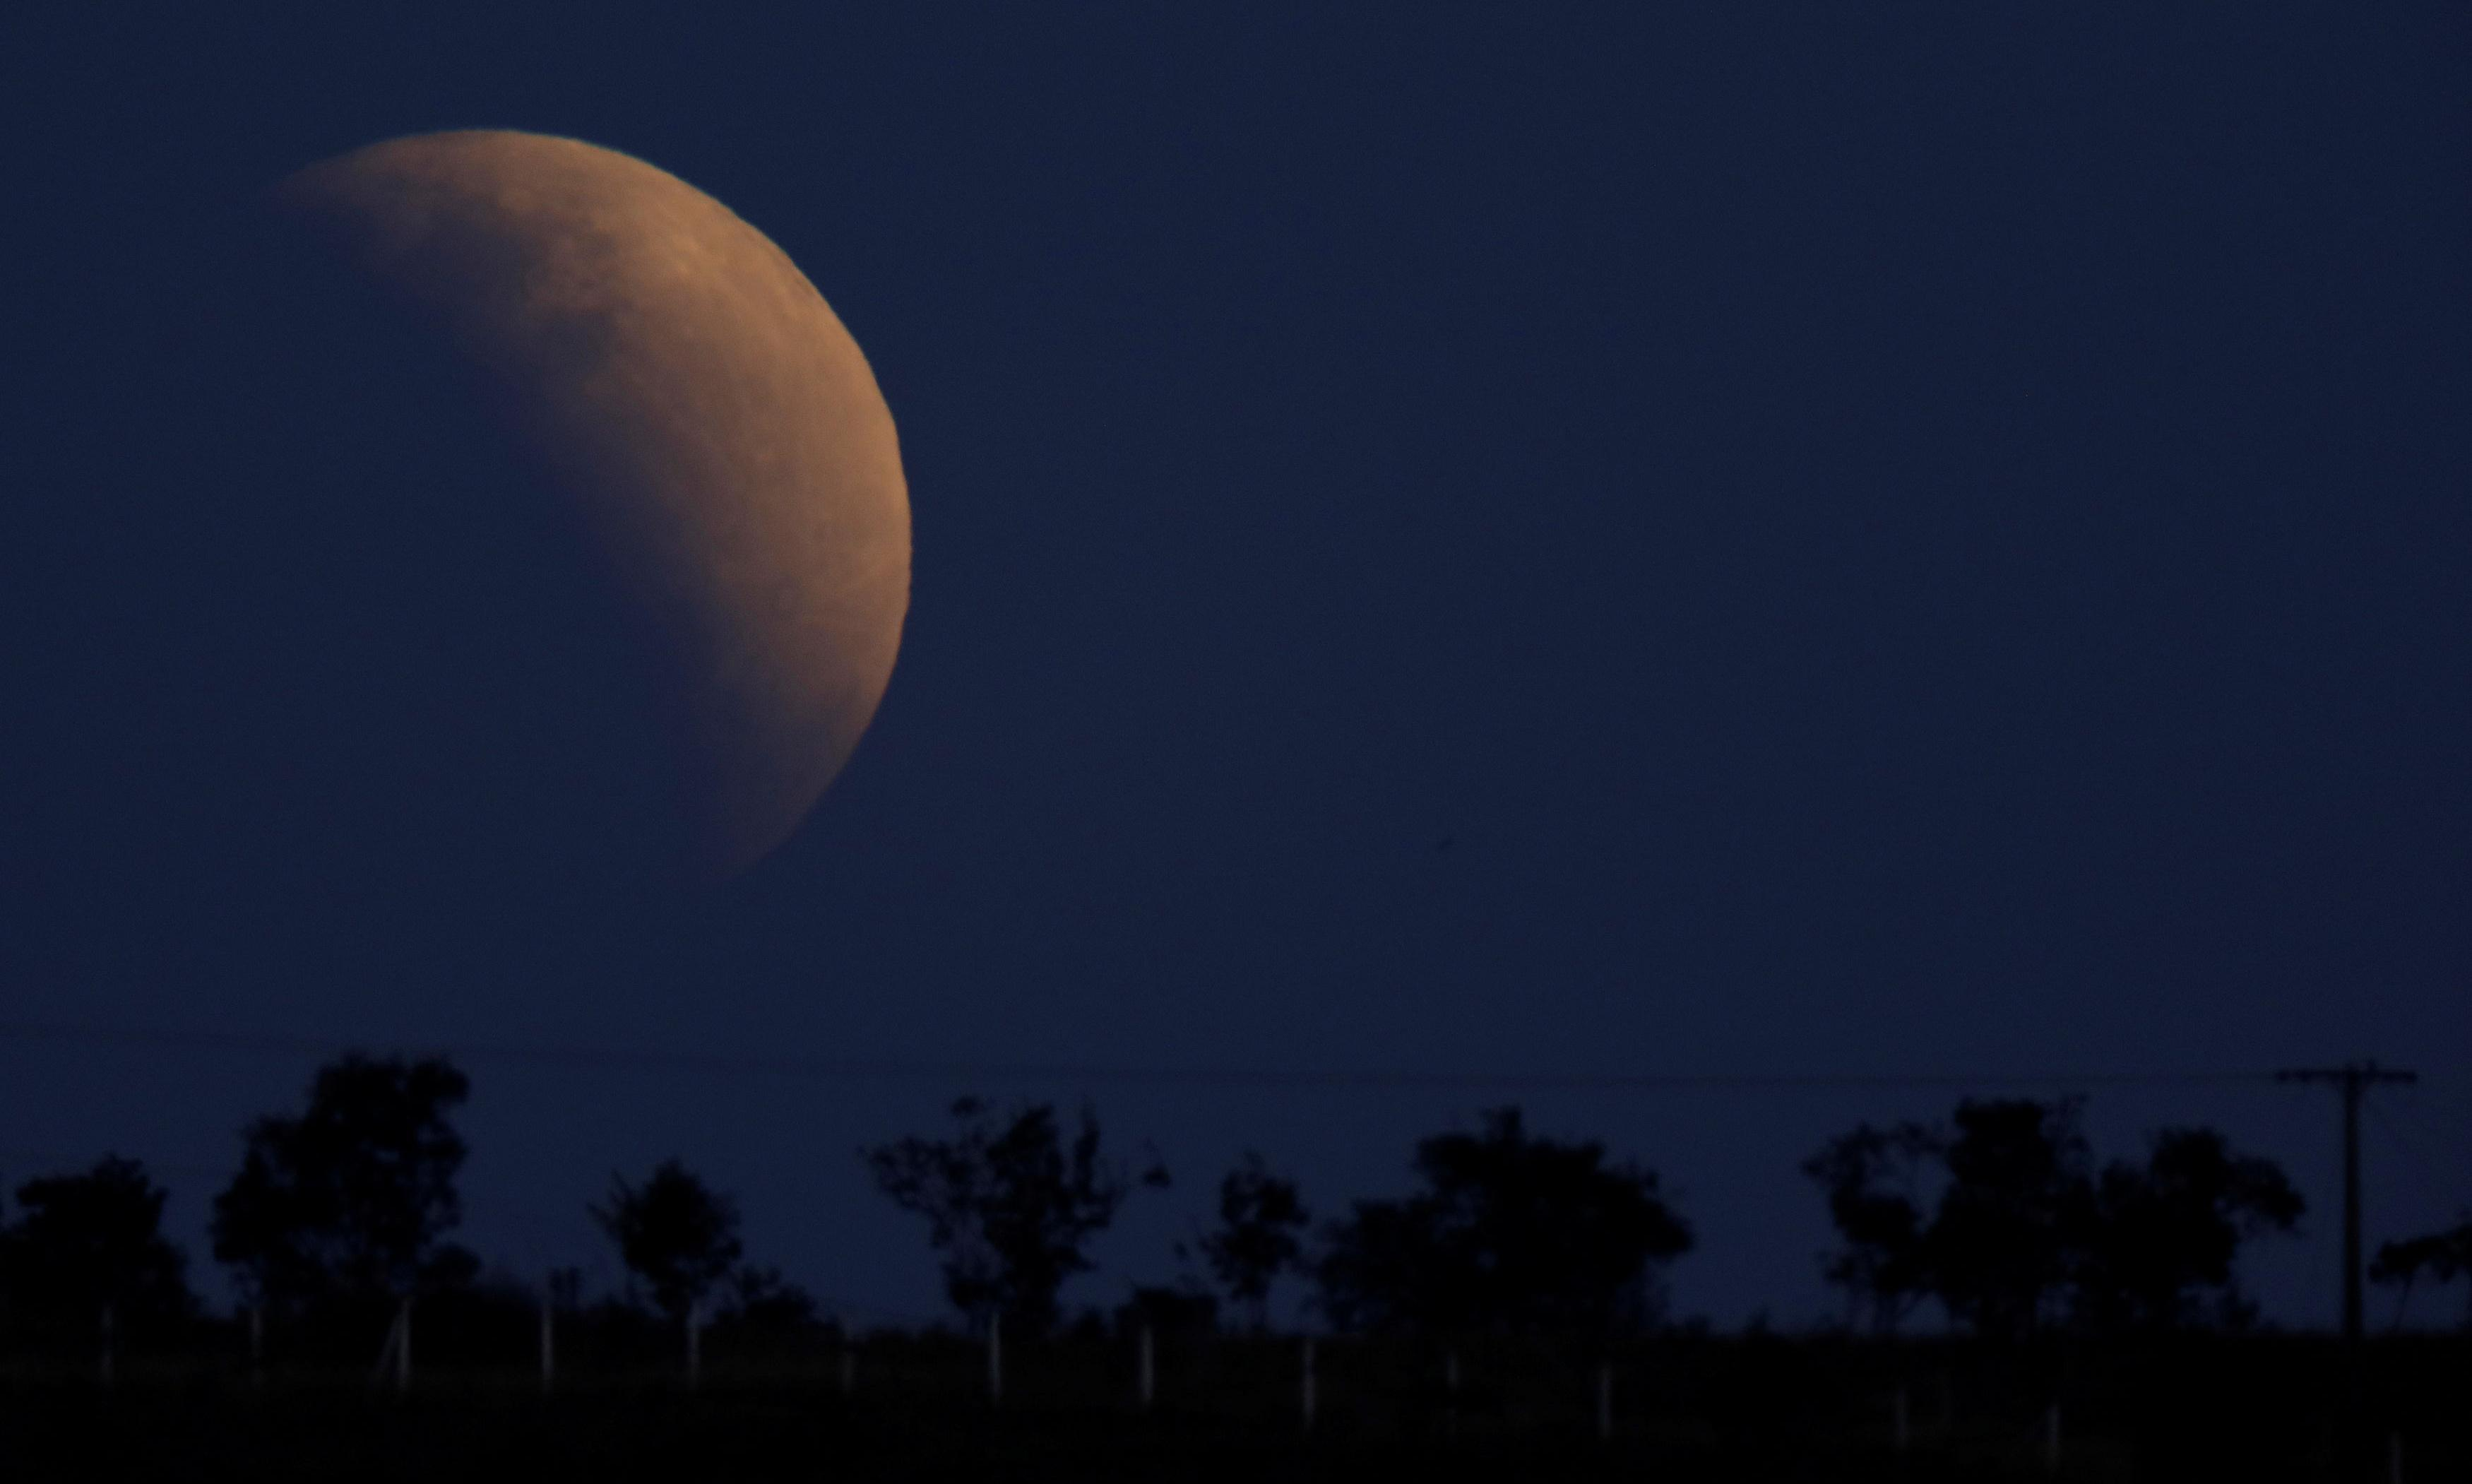 Lunar eclipse 2019: from Australia to the UK, stargazers enjoy bright side of the moon